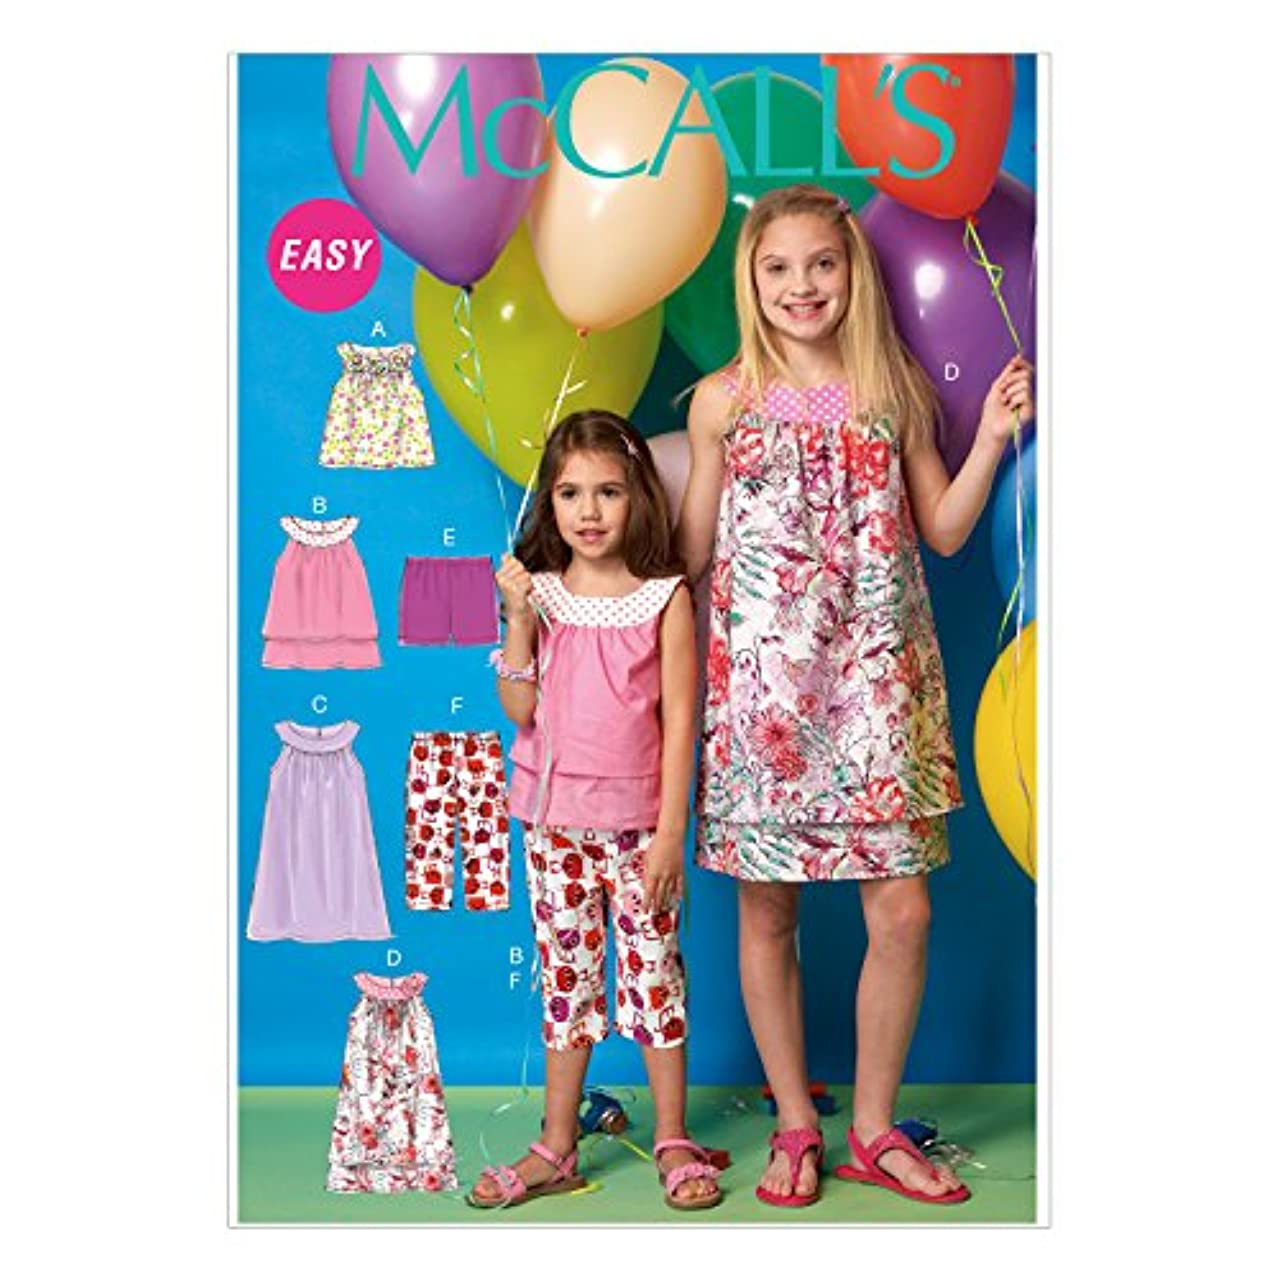 McCall's Patterns M7148 Children's/Girls' Tops, Dresses, Shorts and Capris Sewing Template, CCE (3-4-5-6)